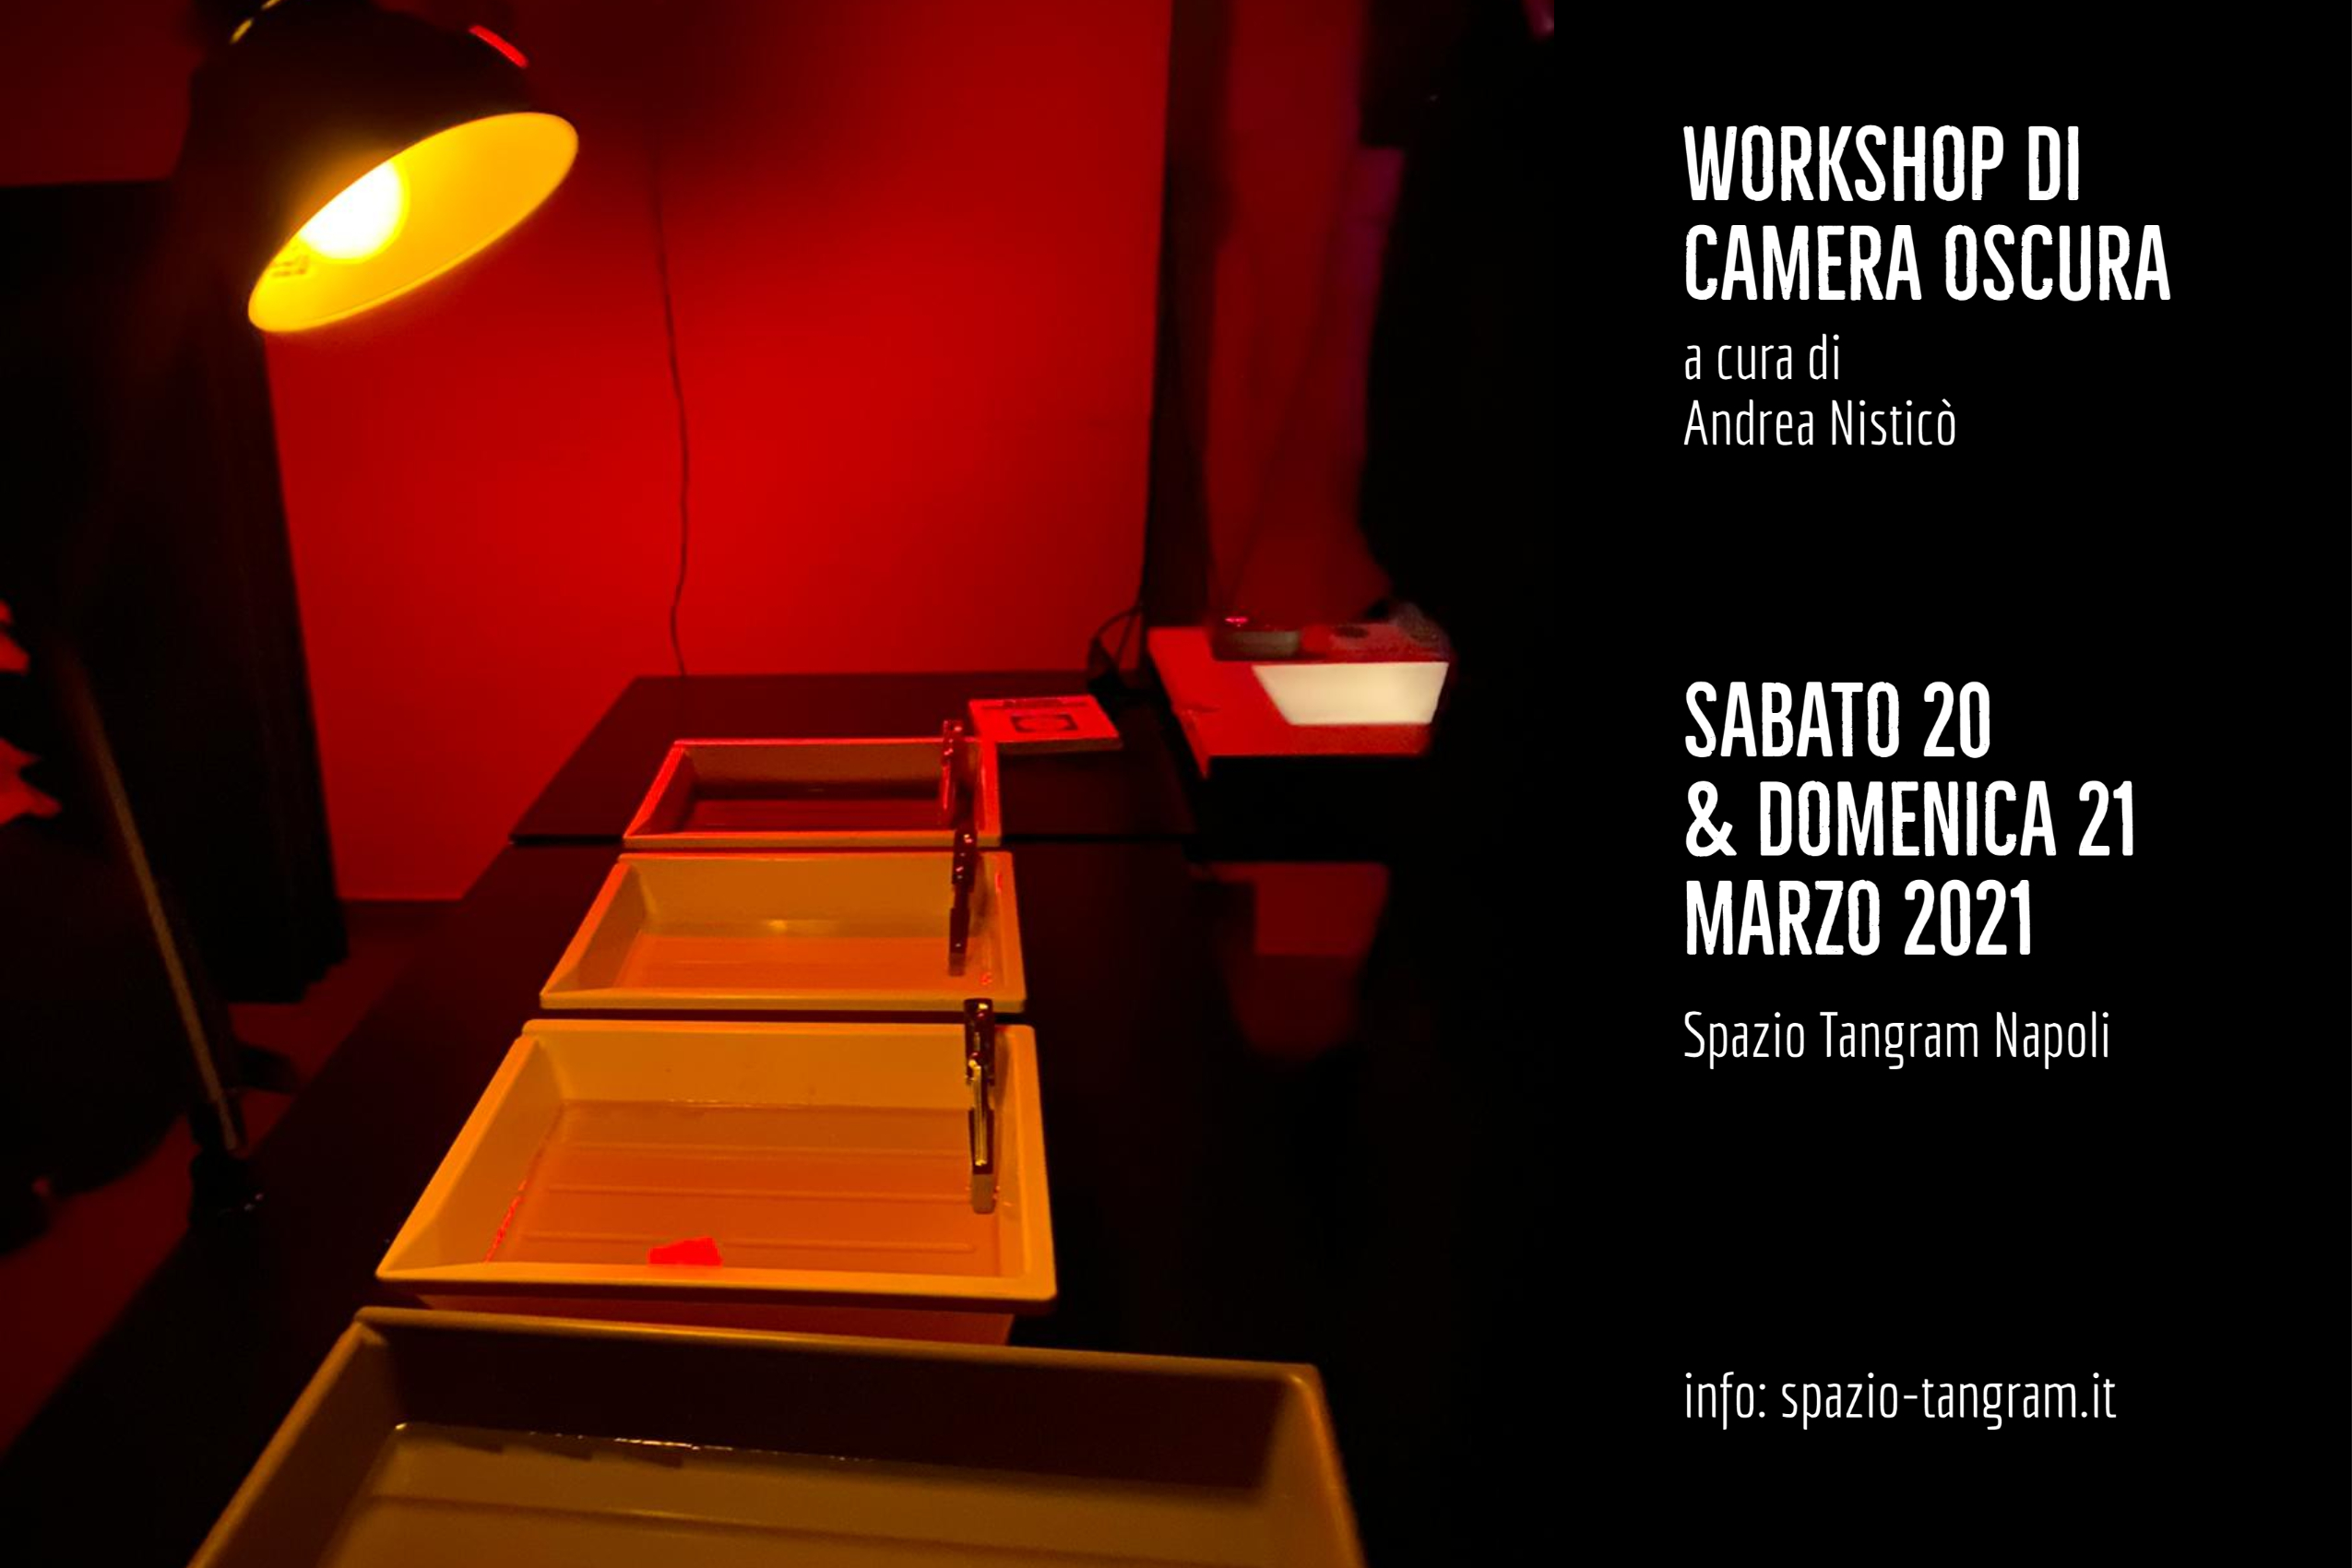 workshop intensivo di sviluppo e stampa in camera oscura a Napoli